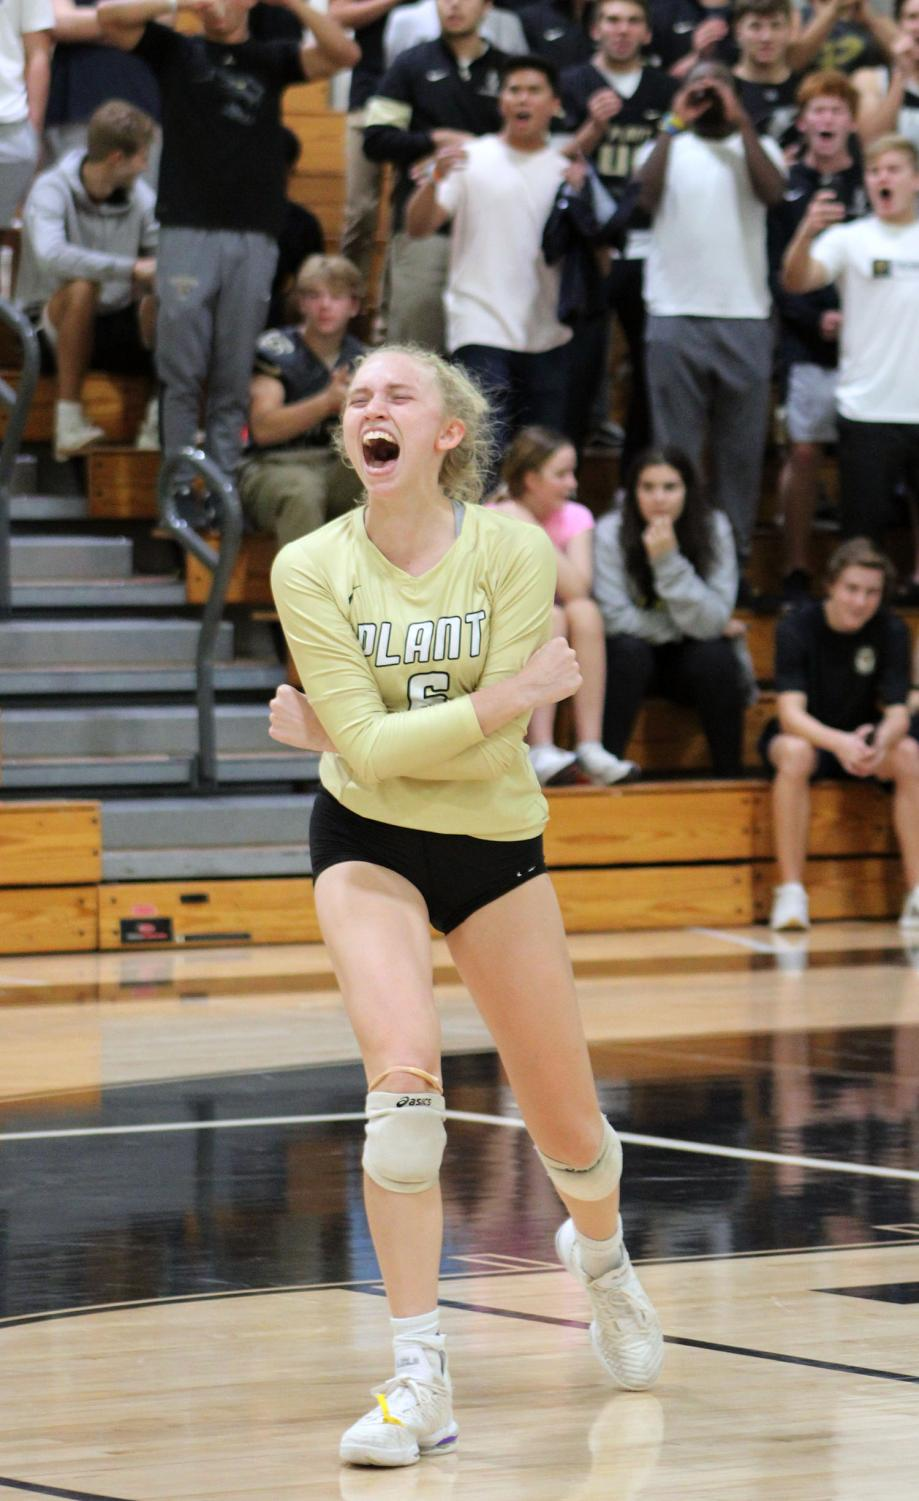 Shouting out, senior Birdie Frierson celebrates after a score. Frierson played outside hitter for the varsity volleyball team during their 2019 season.